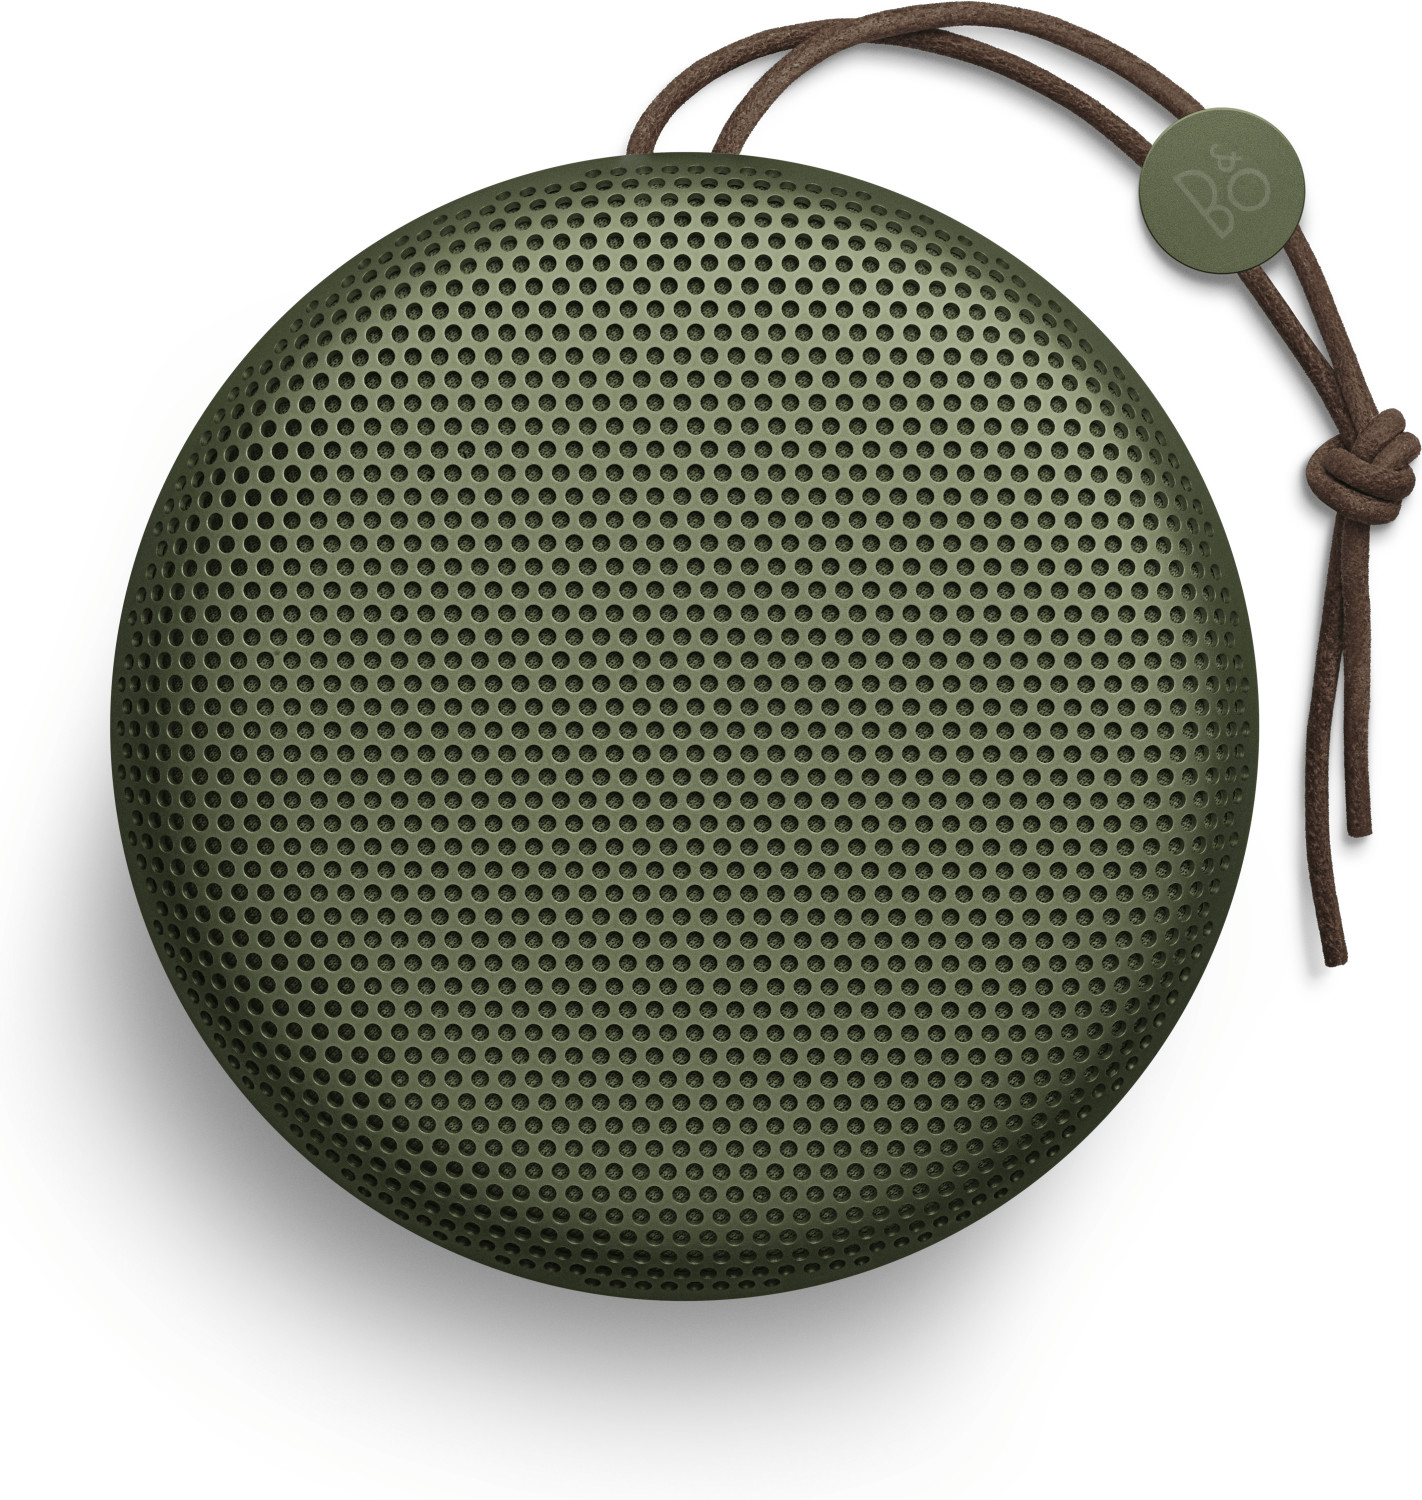 Image of Bang & Olufsen Beoplay A1